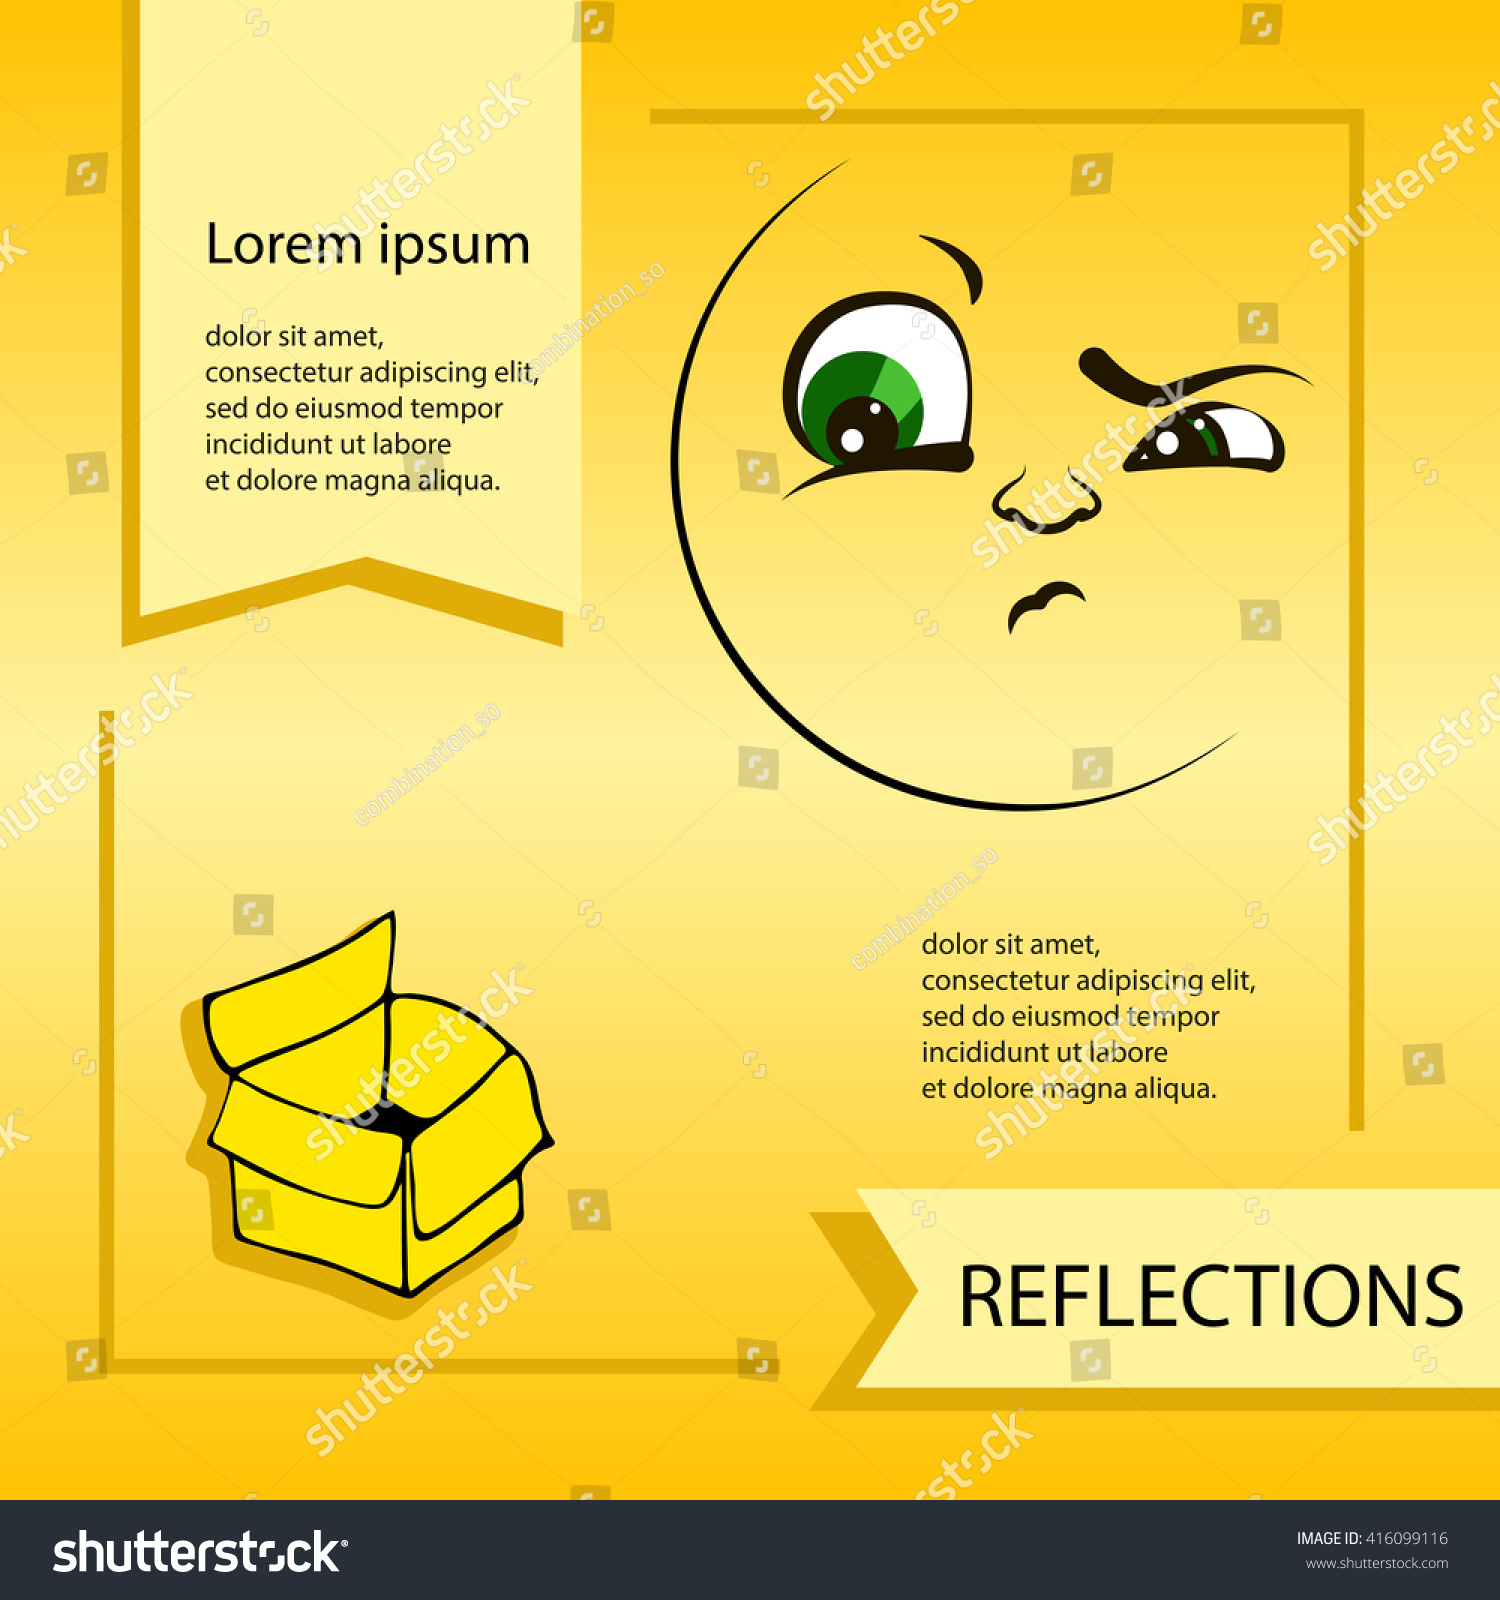 Vector cartoon smiley face emoticon reflections stock vector vector cartoon smiley face emoticon reflections template for advertising brochure ready for your biocorpaavc